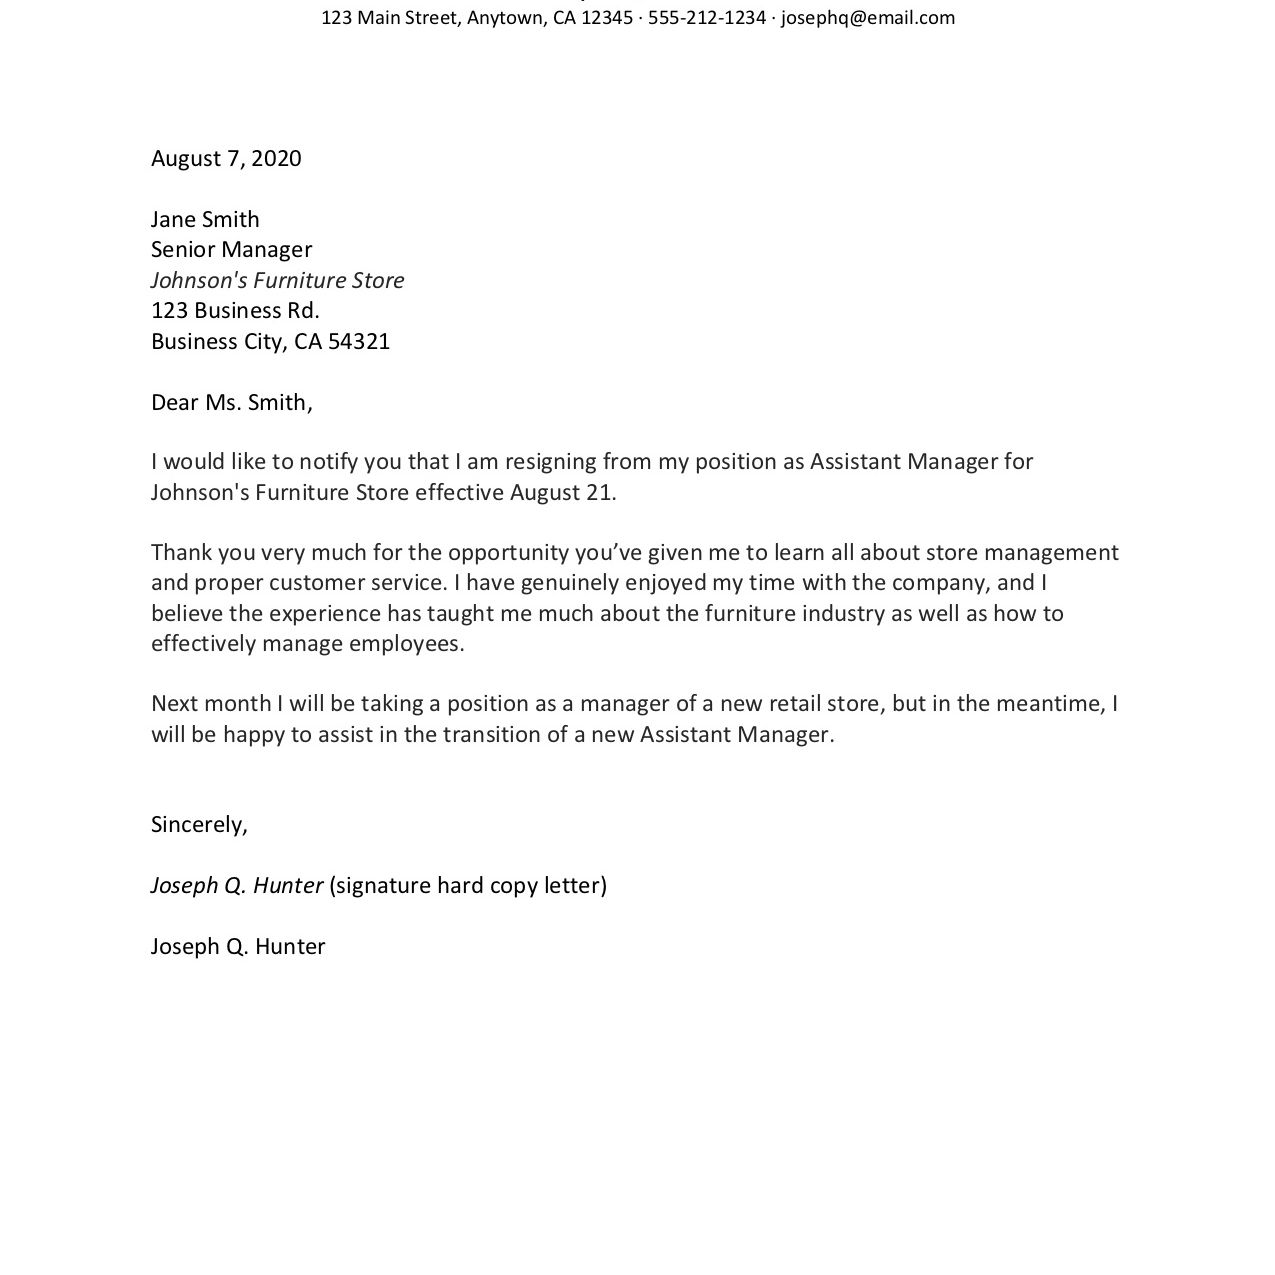 Resignation Letter Samples 2 Week Notice from www.thebalancecareers.com